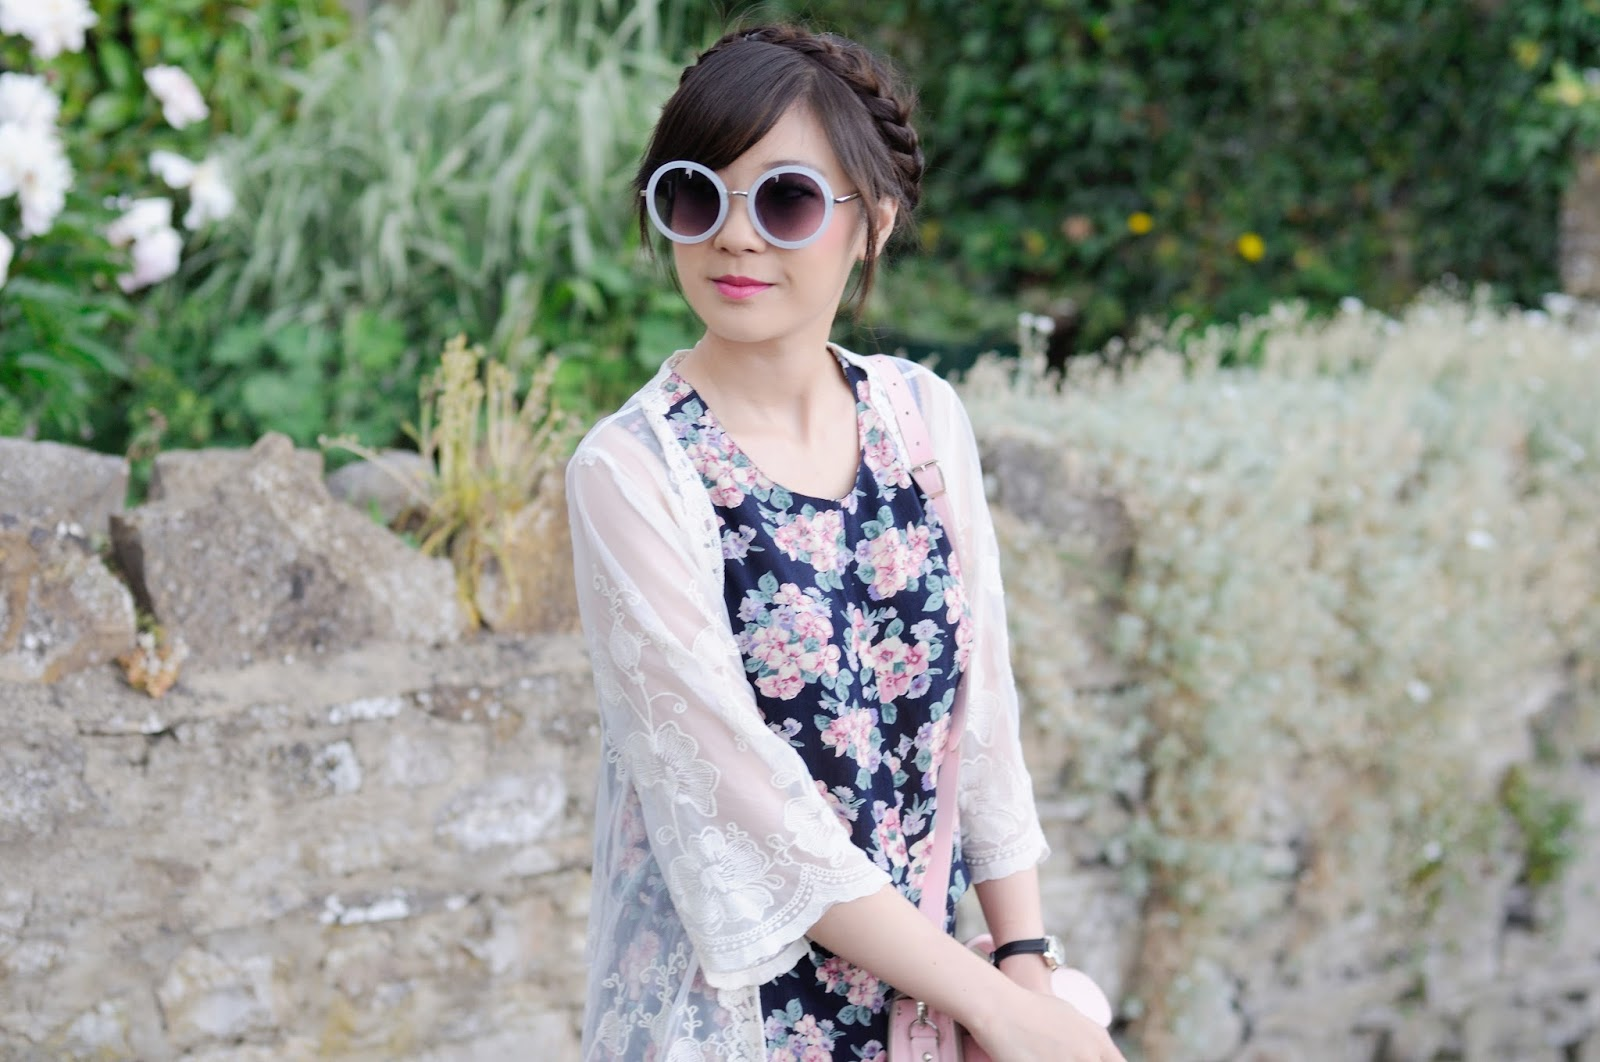 Floral Playsuit ASOS, UK Style blogger, heidi braids, milkmaid braid hairstyle